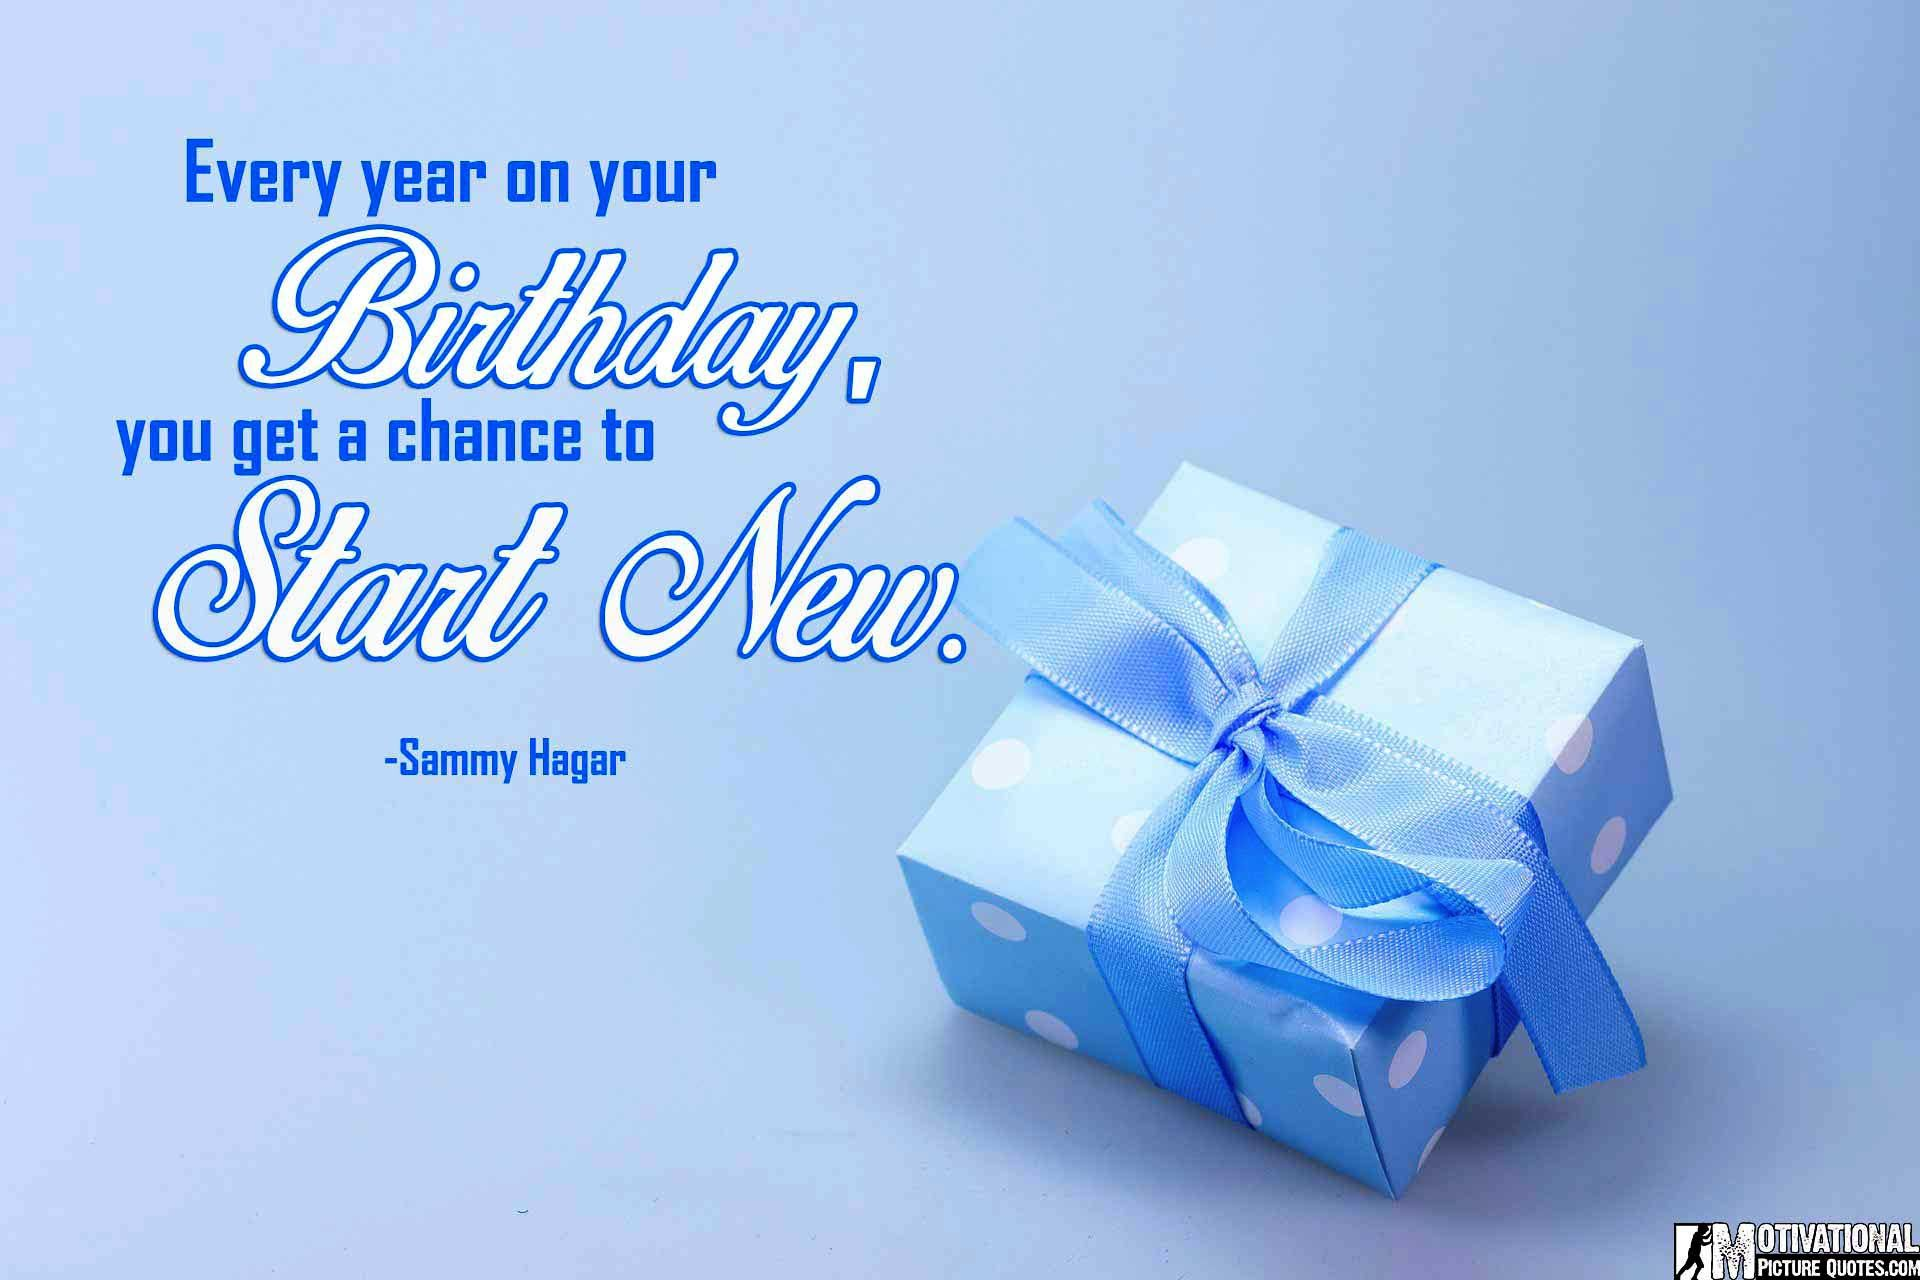 Inspirational Birthday Quotes with Every year on your